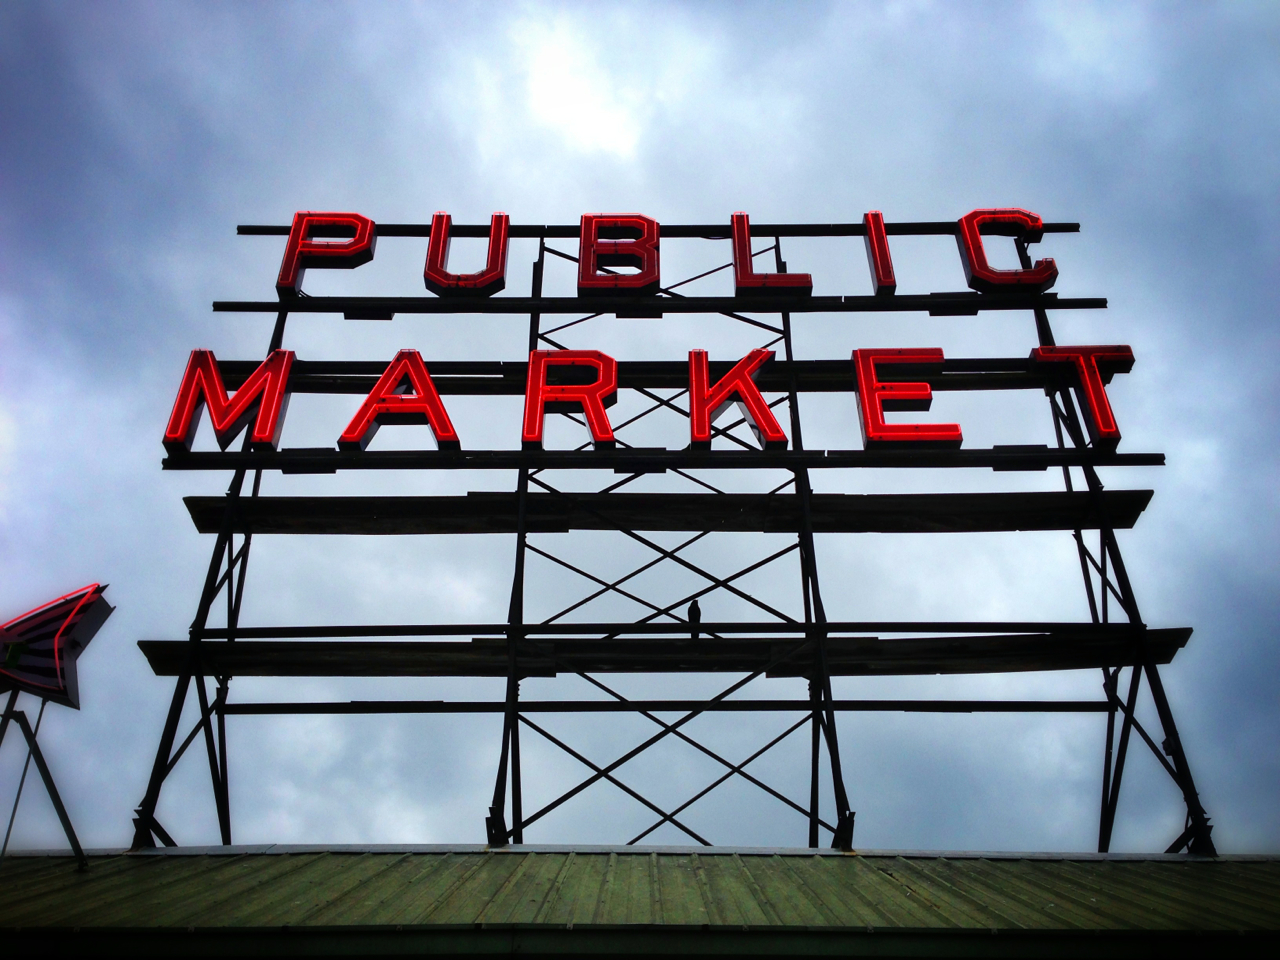 Had a great Sunday afternoon at Pike Place Market today!